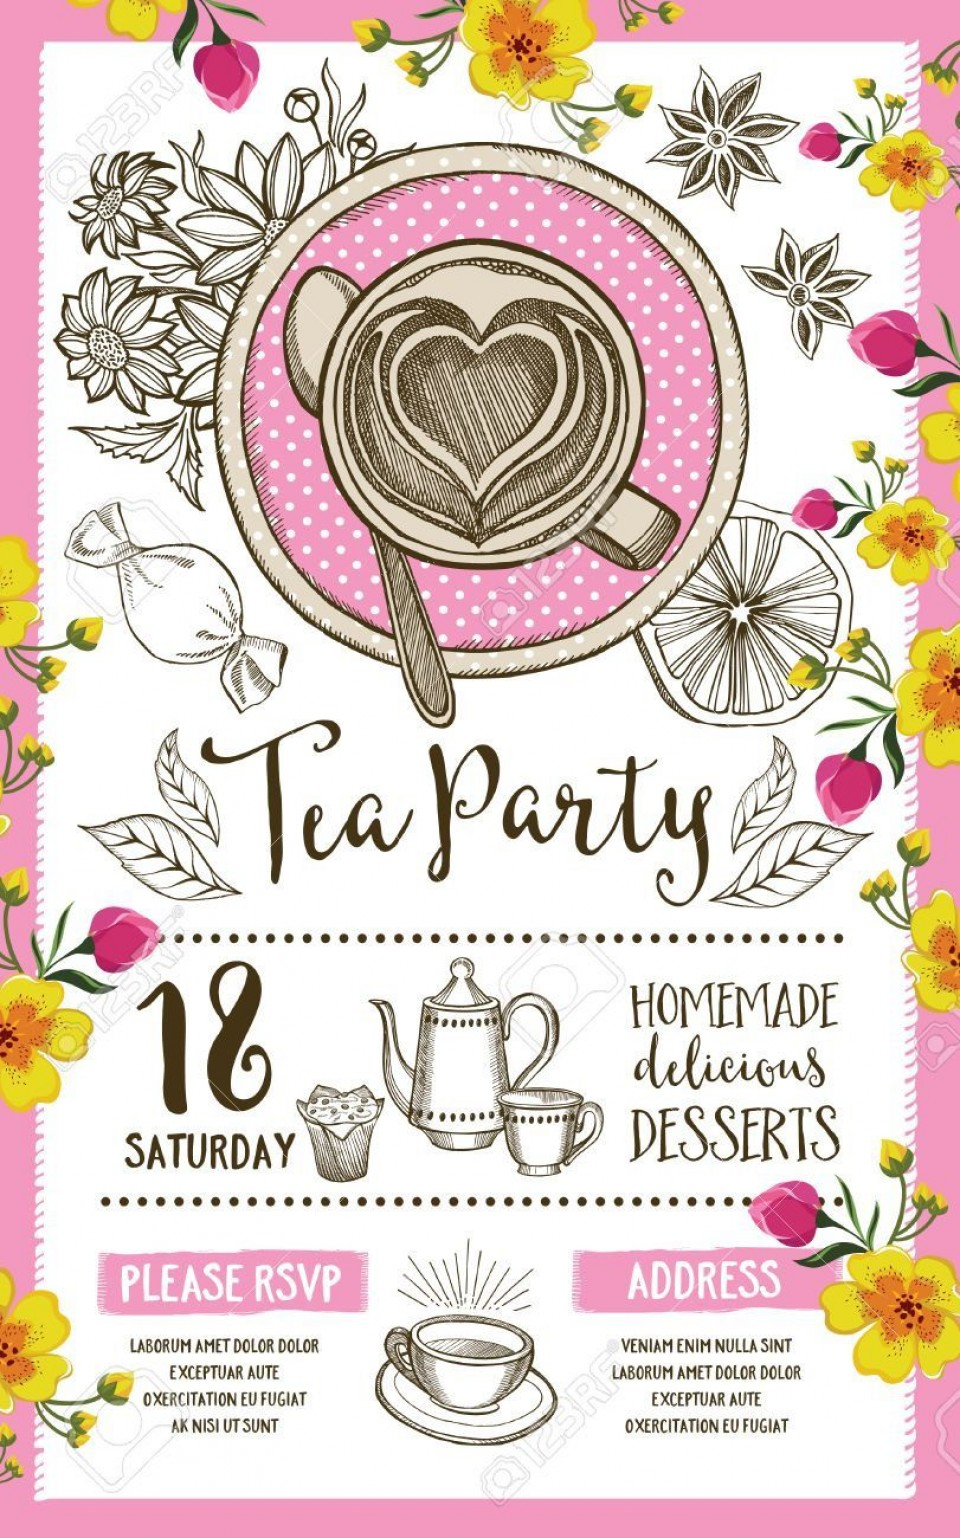 004 Wonderful Tea Party Invitation Template Inspiration  Card Victorian Wording For Bridal Shower960